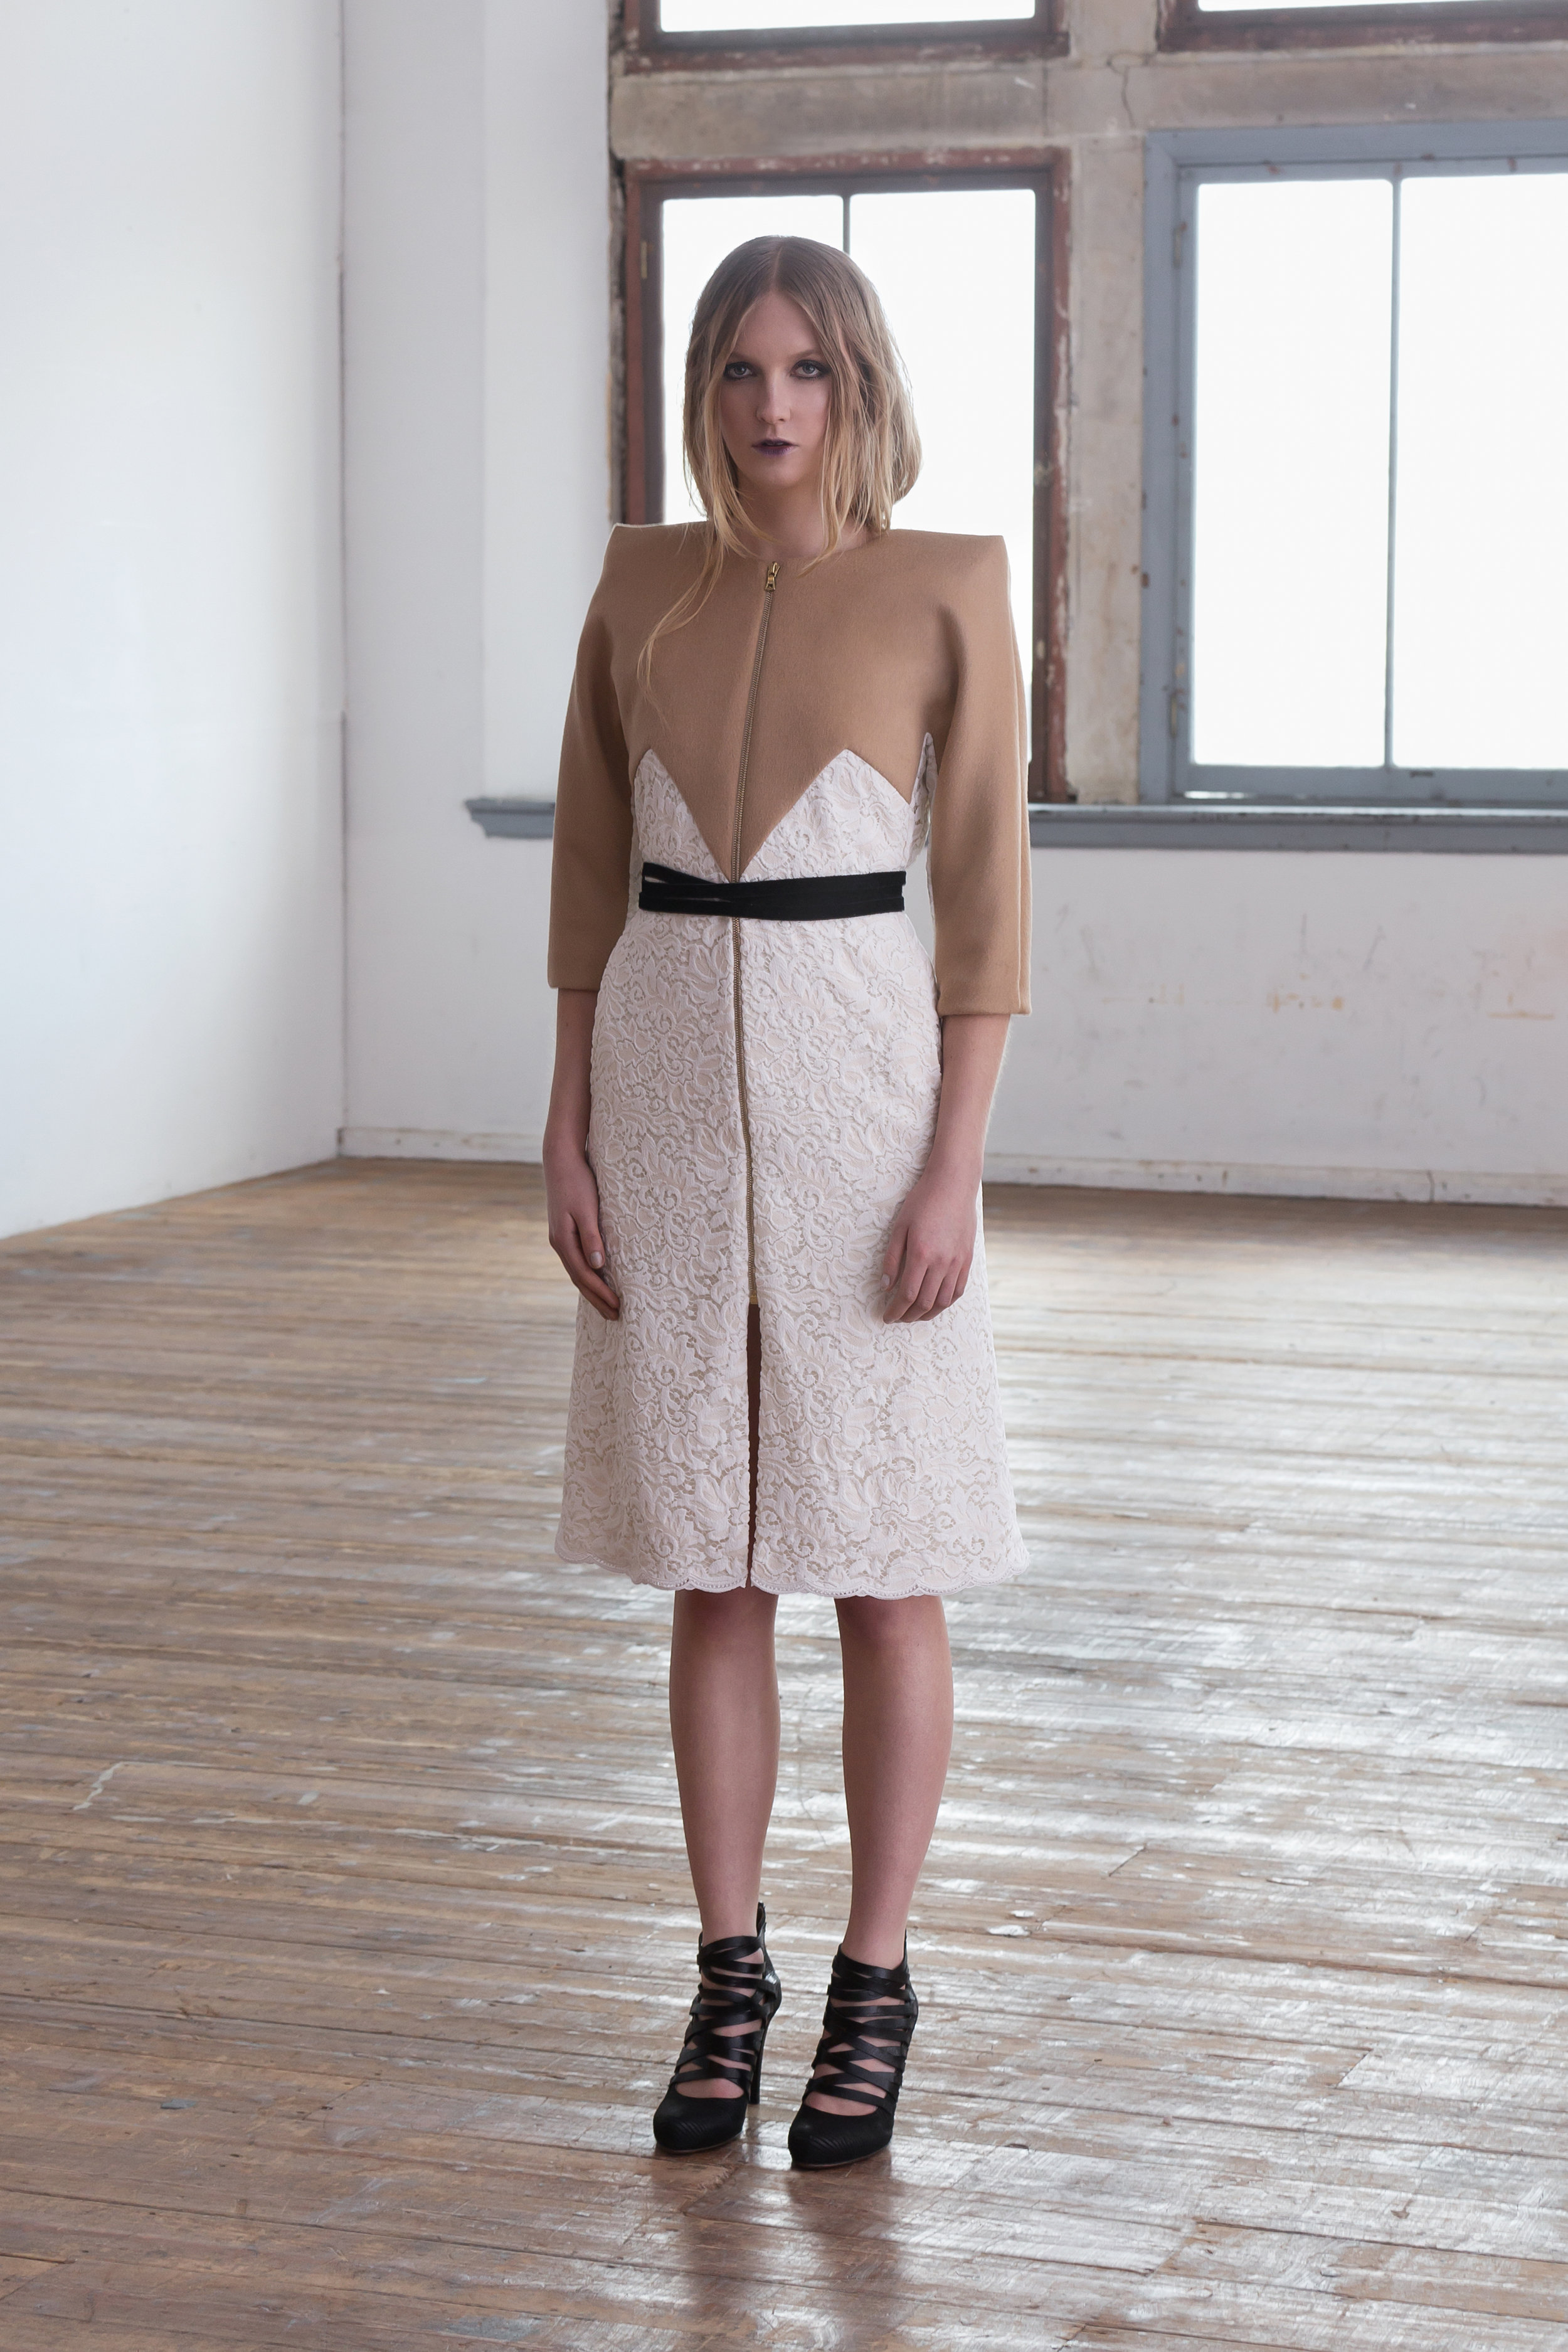 KathrynBeker_Lookbook_Image13.jpg